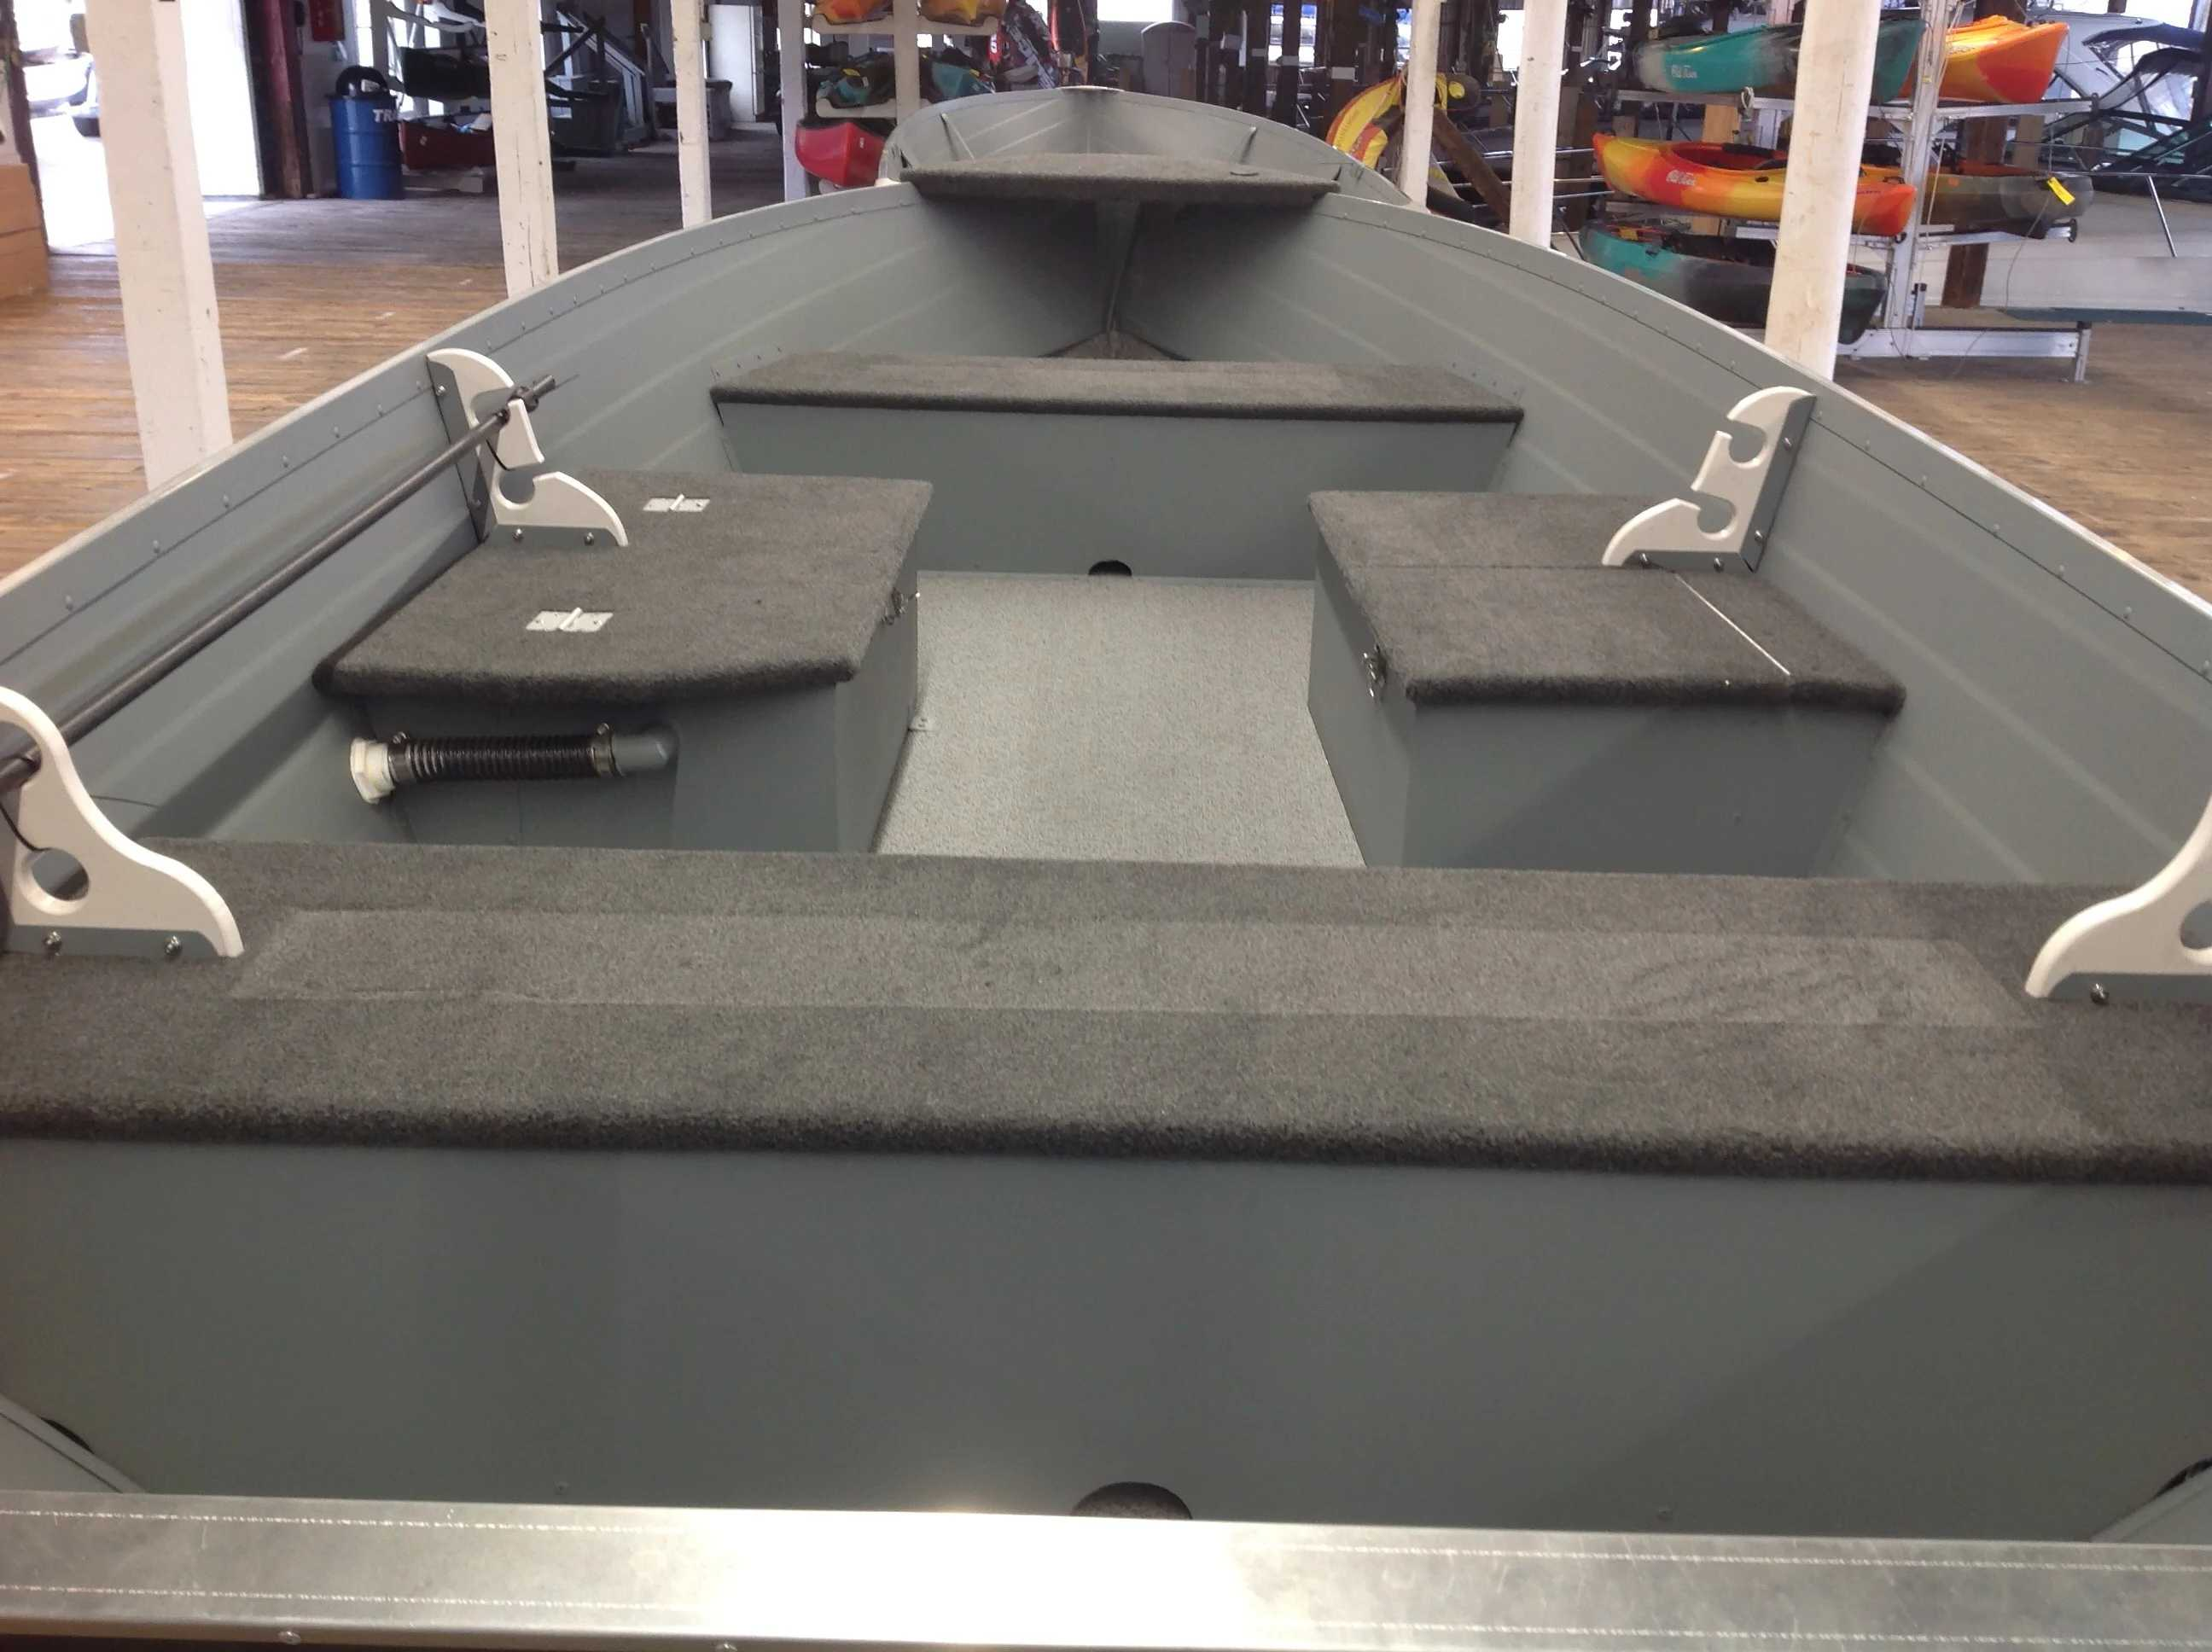 2021 Smoker Craft boat for sale, model of the boat is 14 Big Fish Tl Dlx & Image # 4 of 7